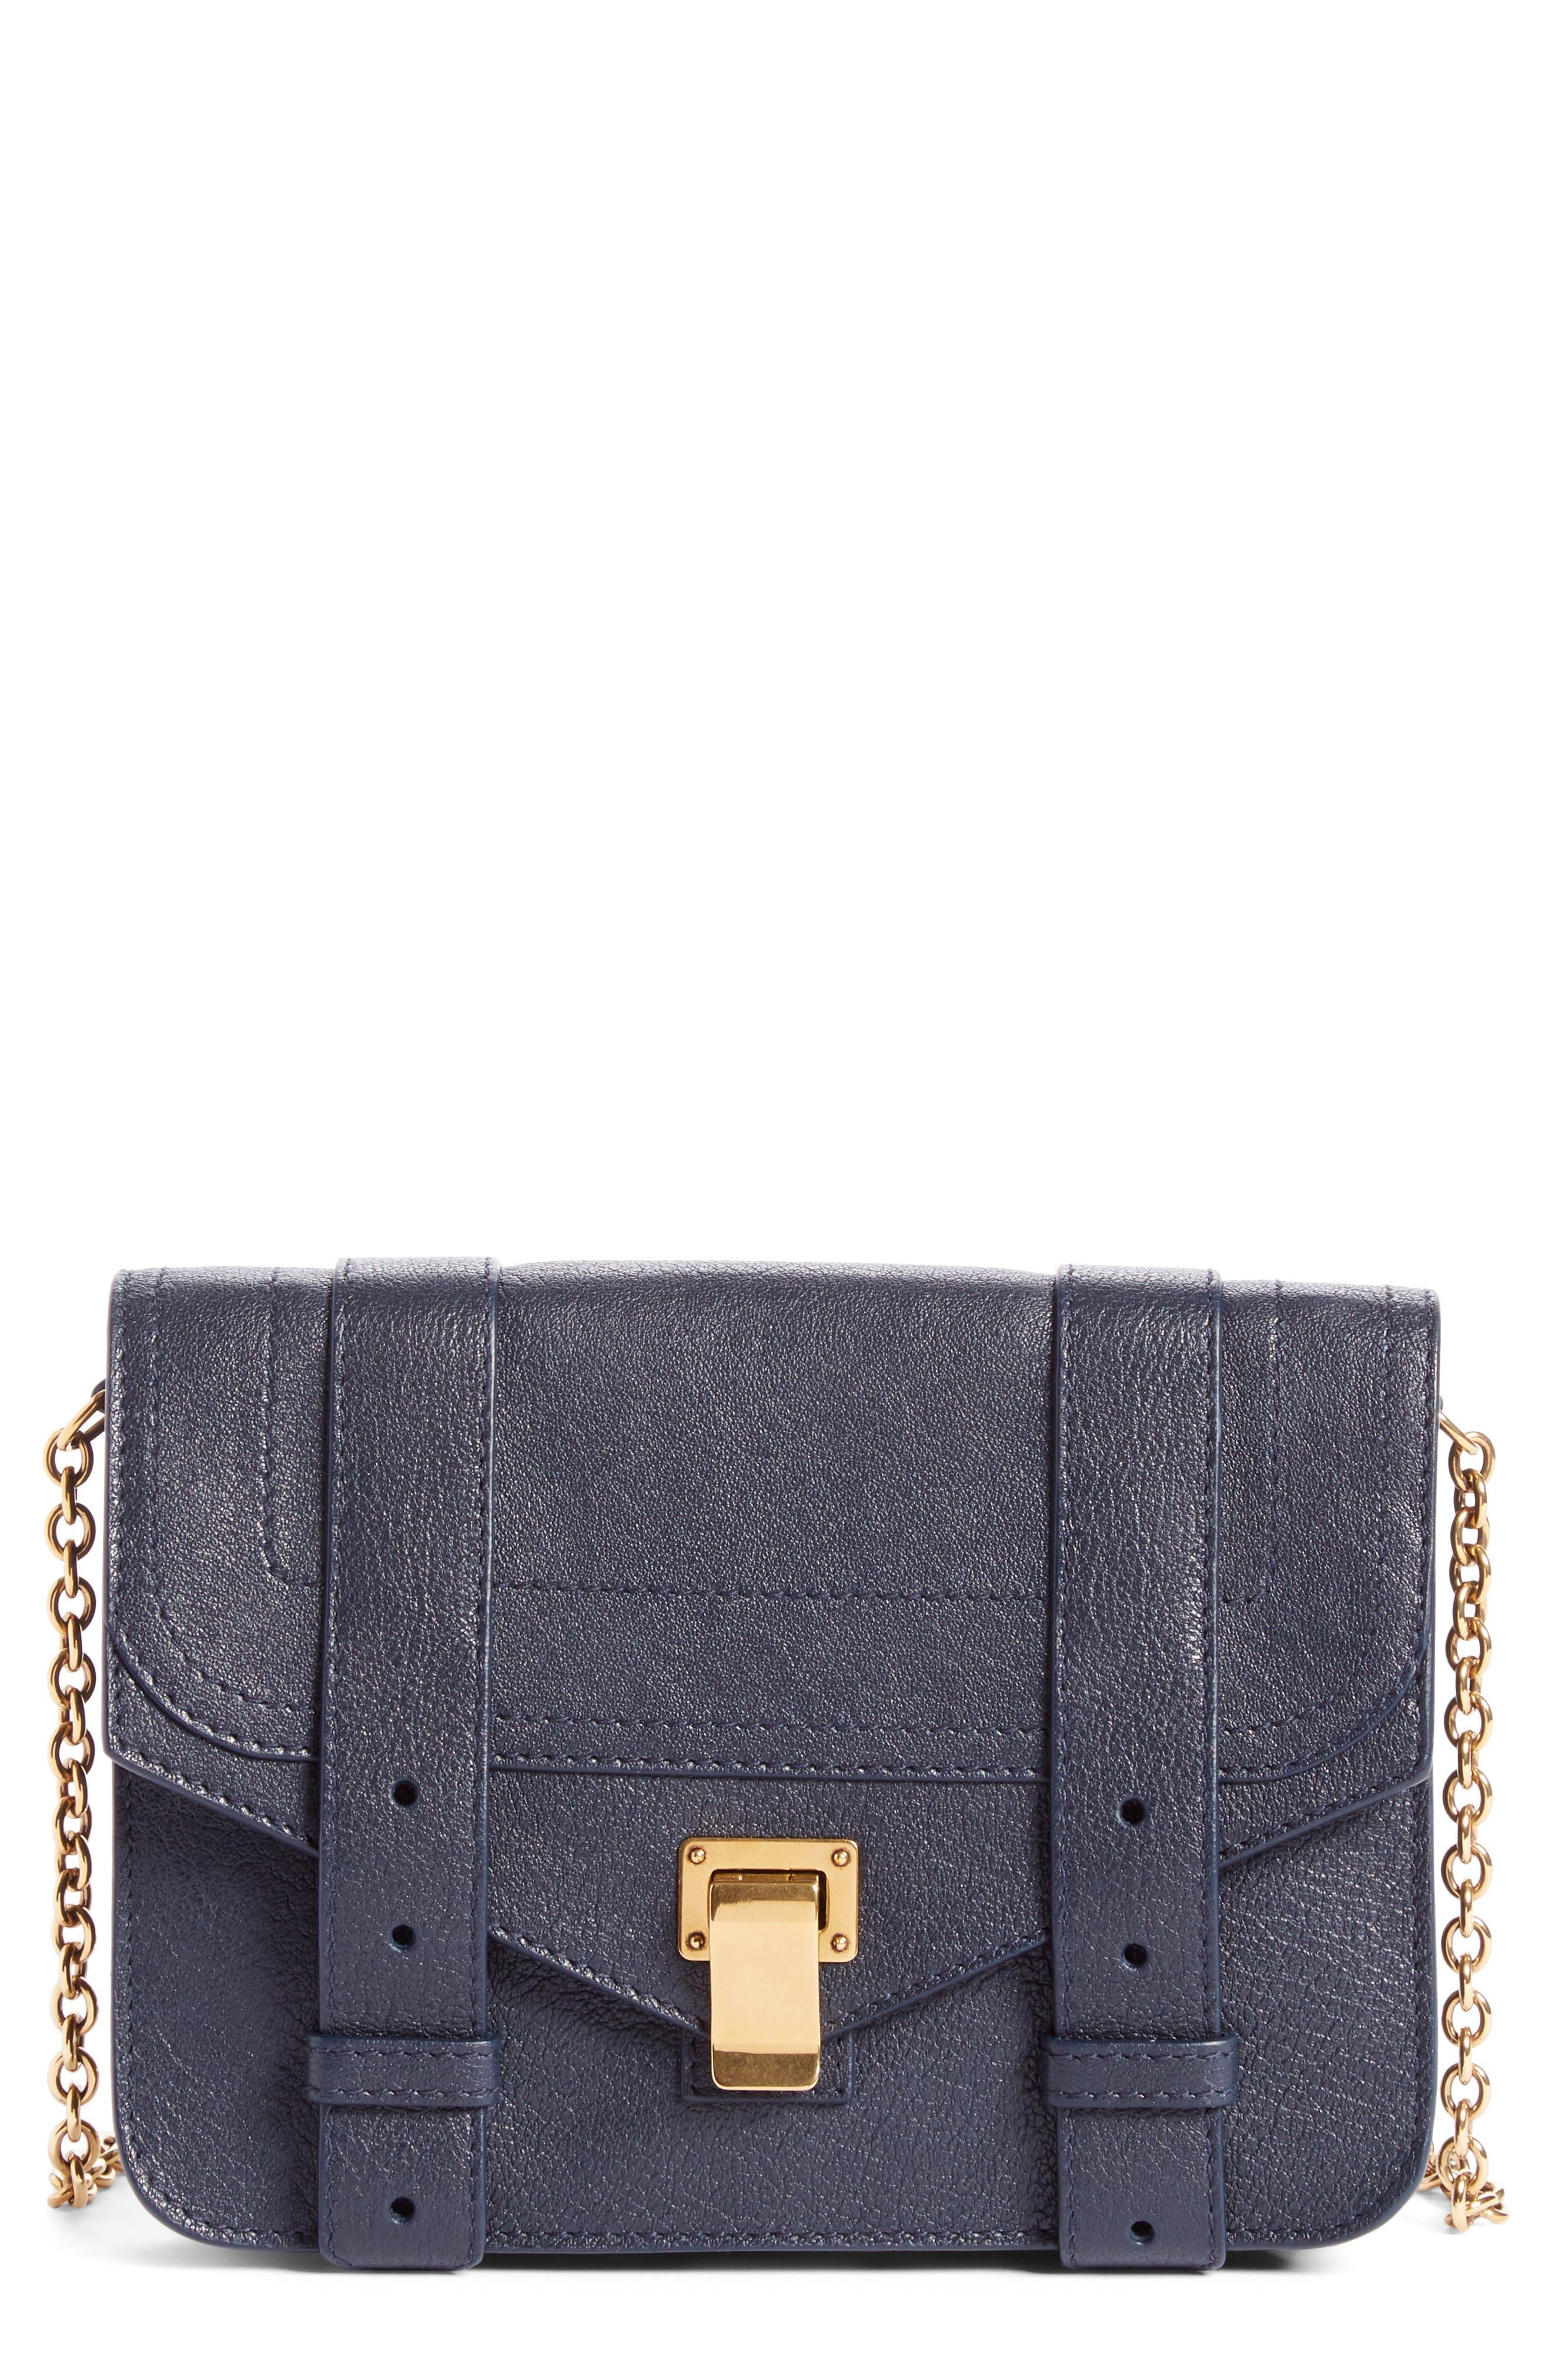 Proenza Schouler PS1 Lambskin Leather Chain Wallet